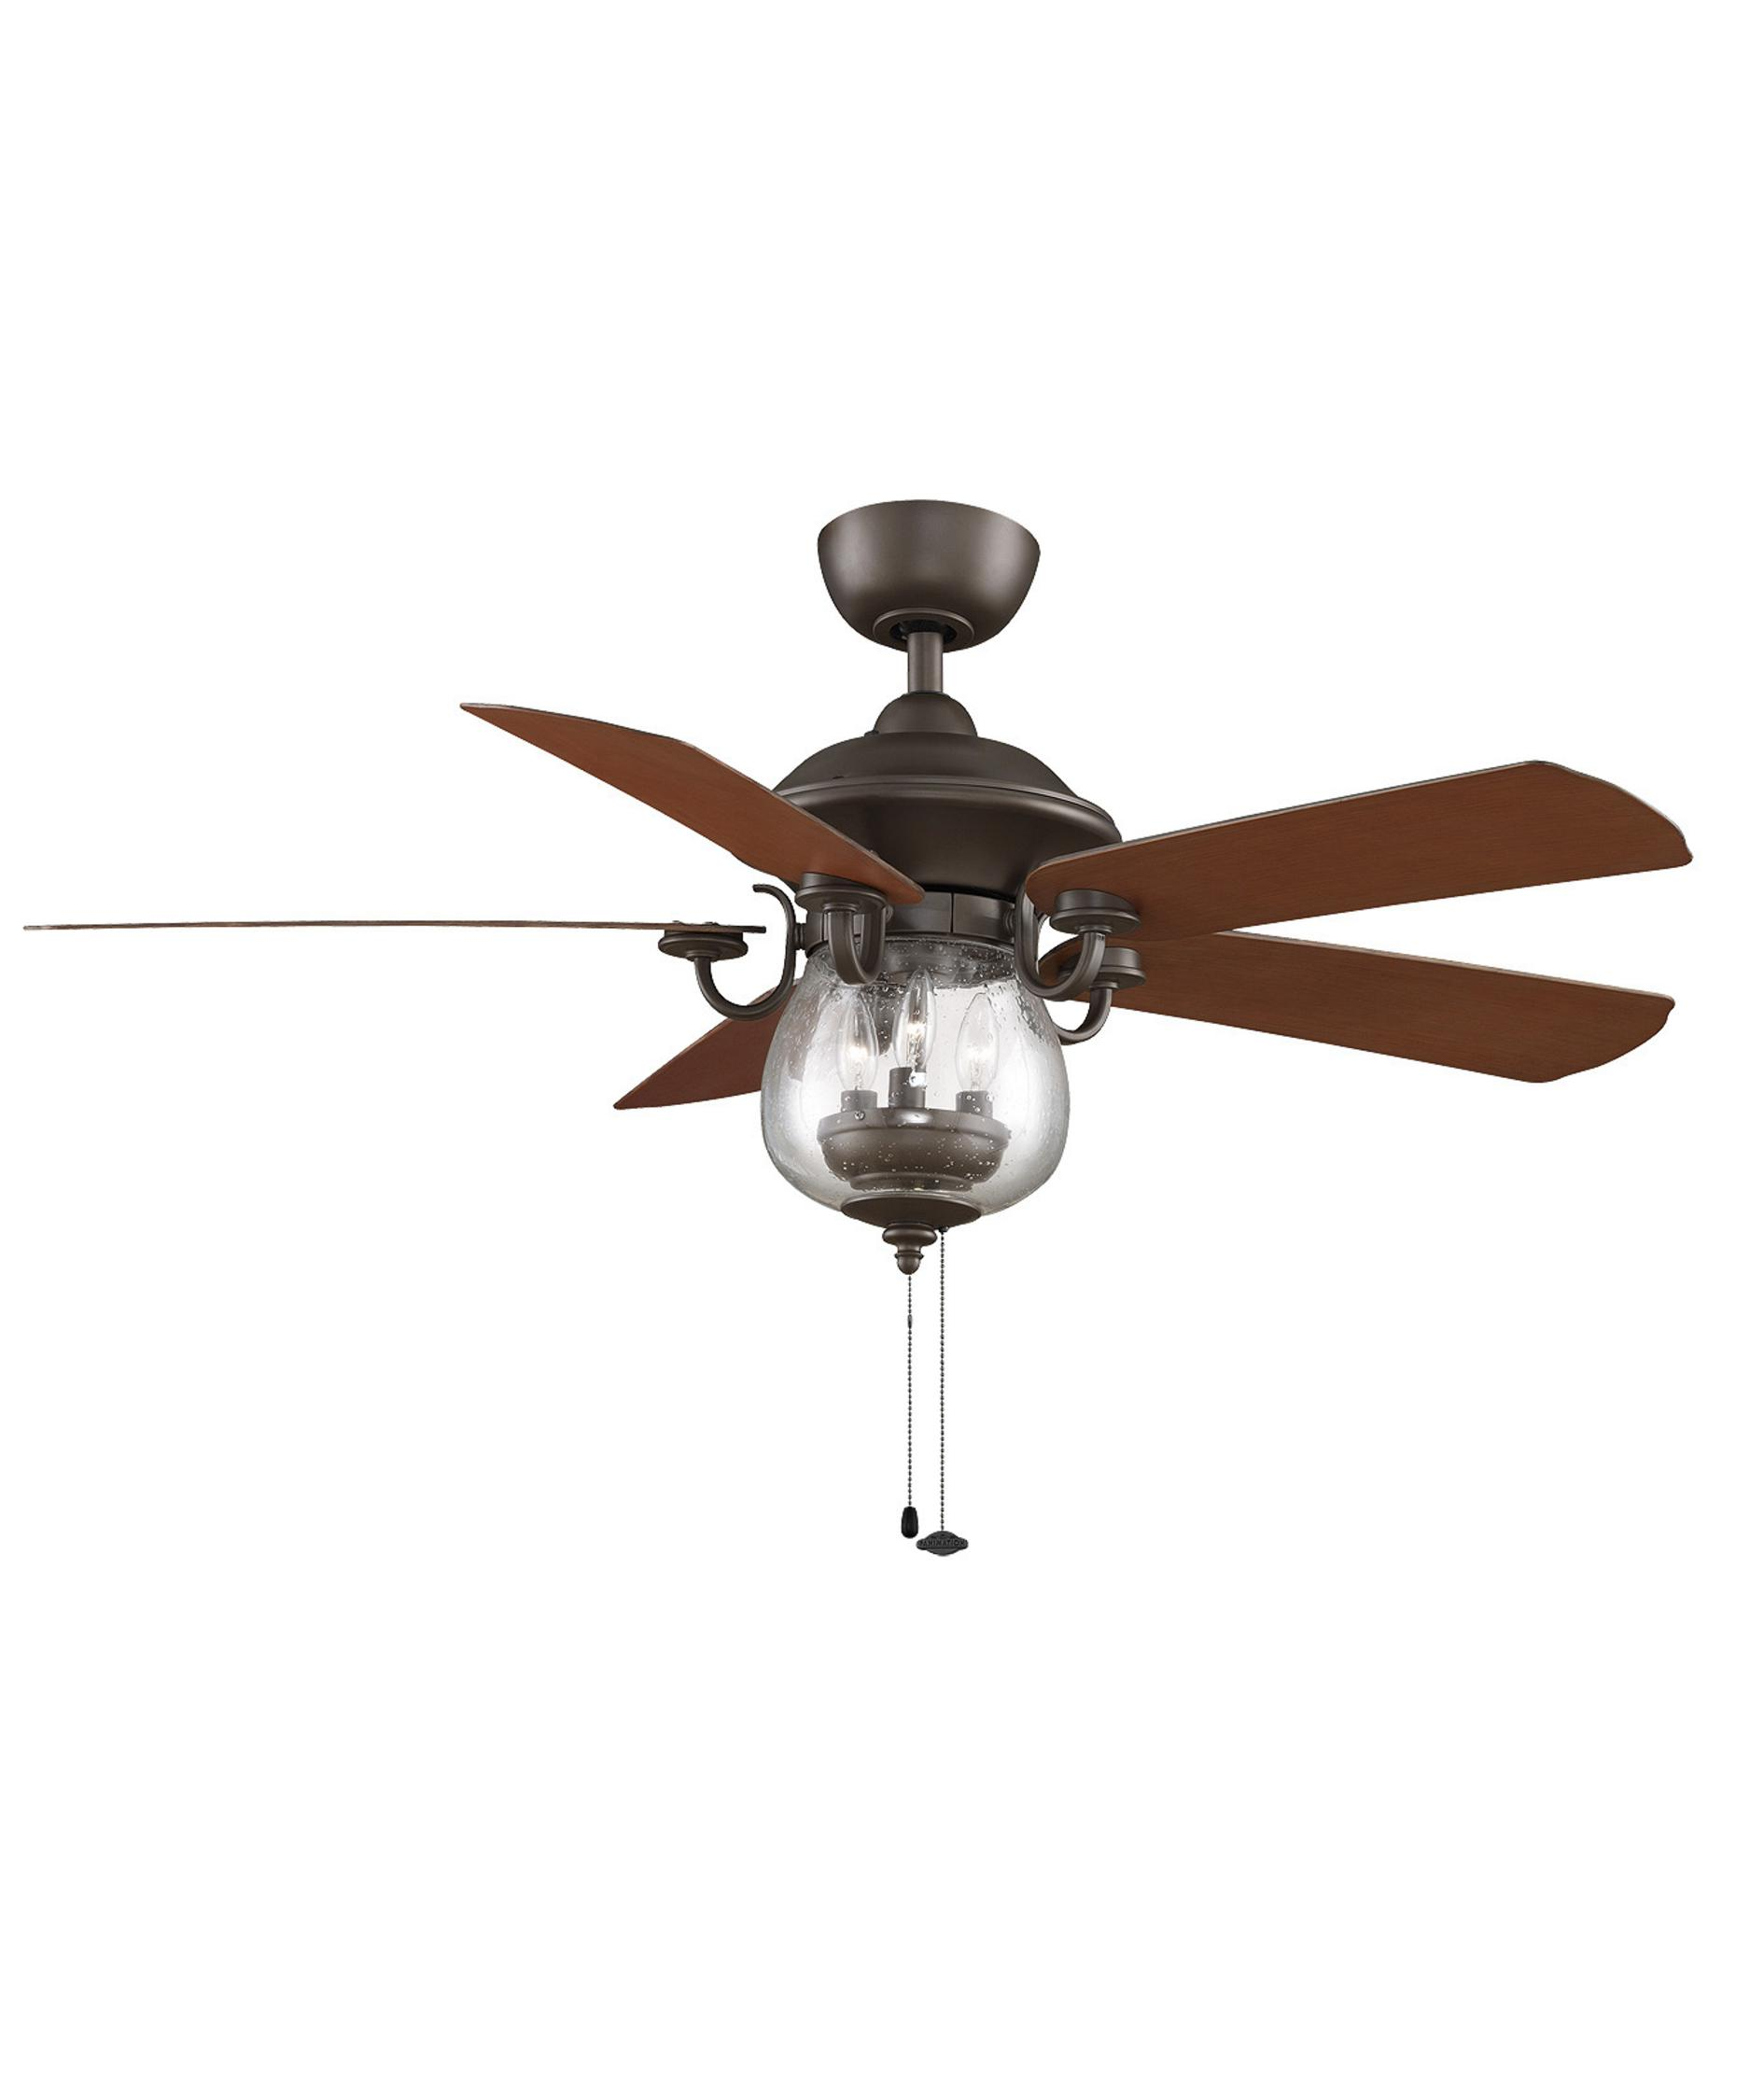 Installing A Universal Ceiling Fan And Light Wall Control : Installing hunter ceiling fan and light wall mount control